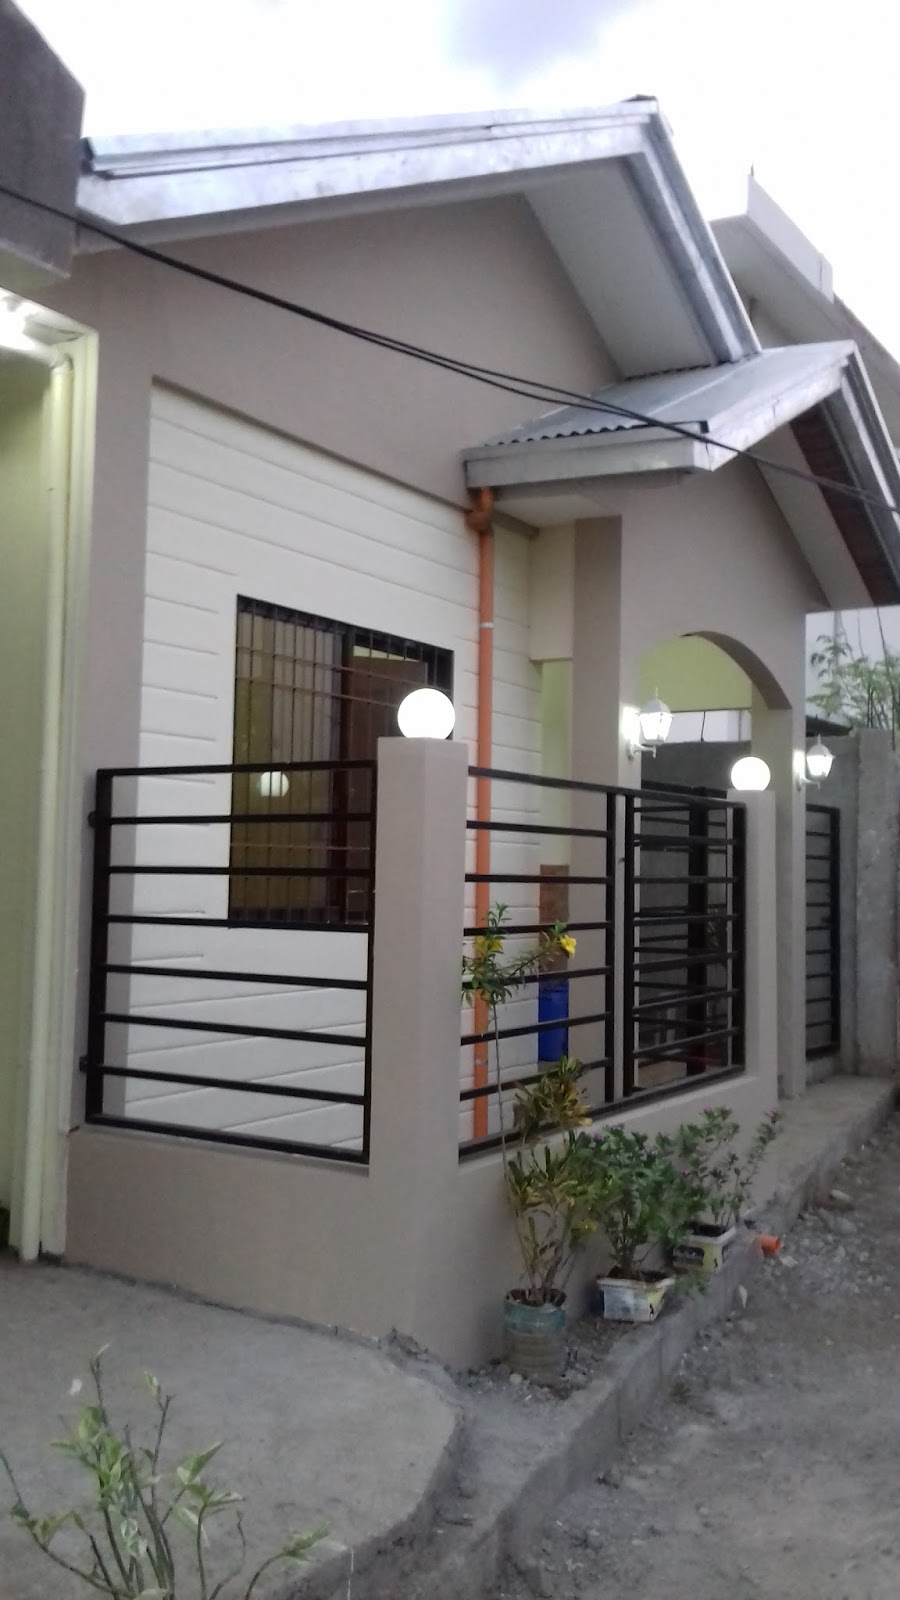 House design worth 2 million philippines - Actual House Total Expenses P500 000 Expenses